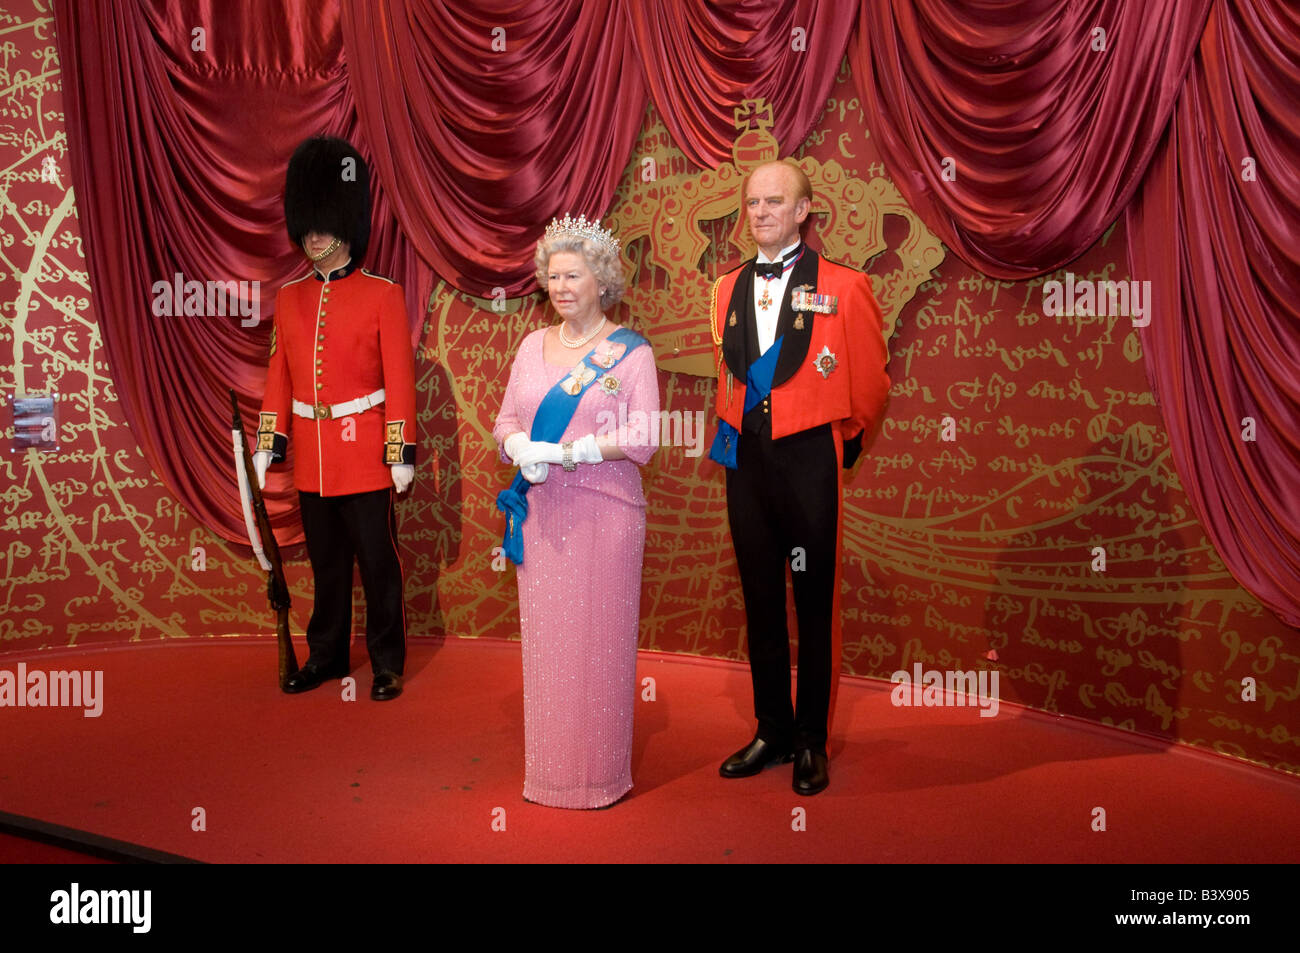 Waxwork models of the Queen and Prince Phillip at Madame Tussauds London England UK - Stock Image